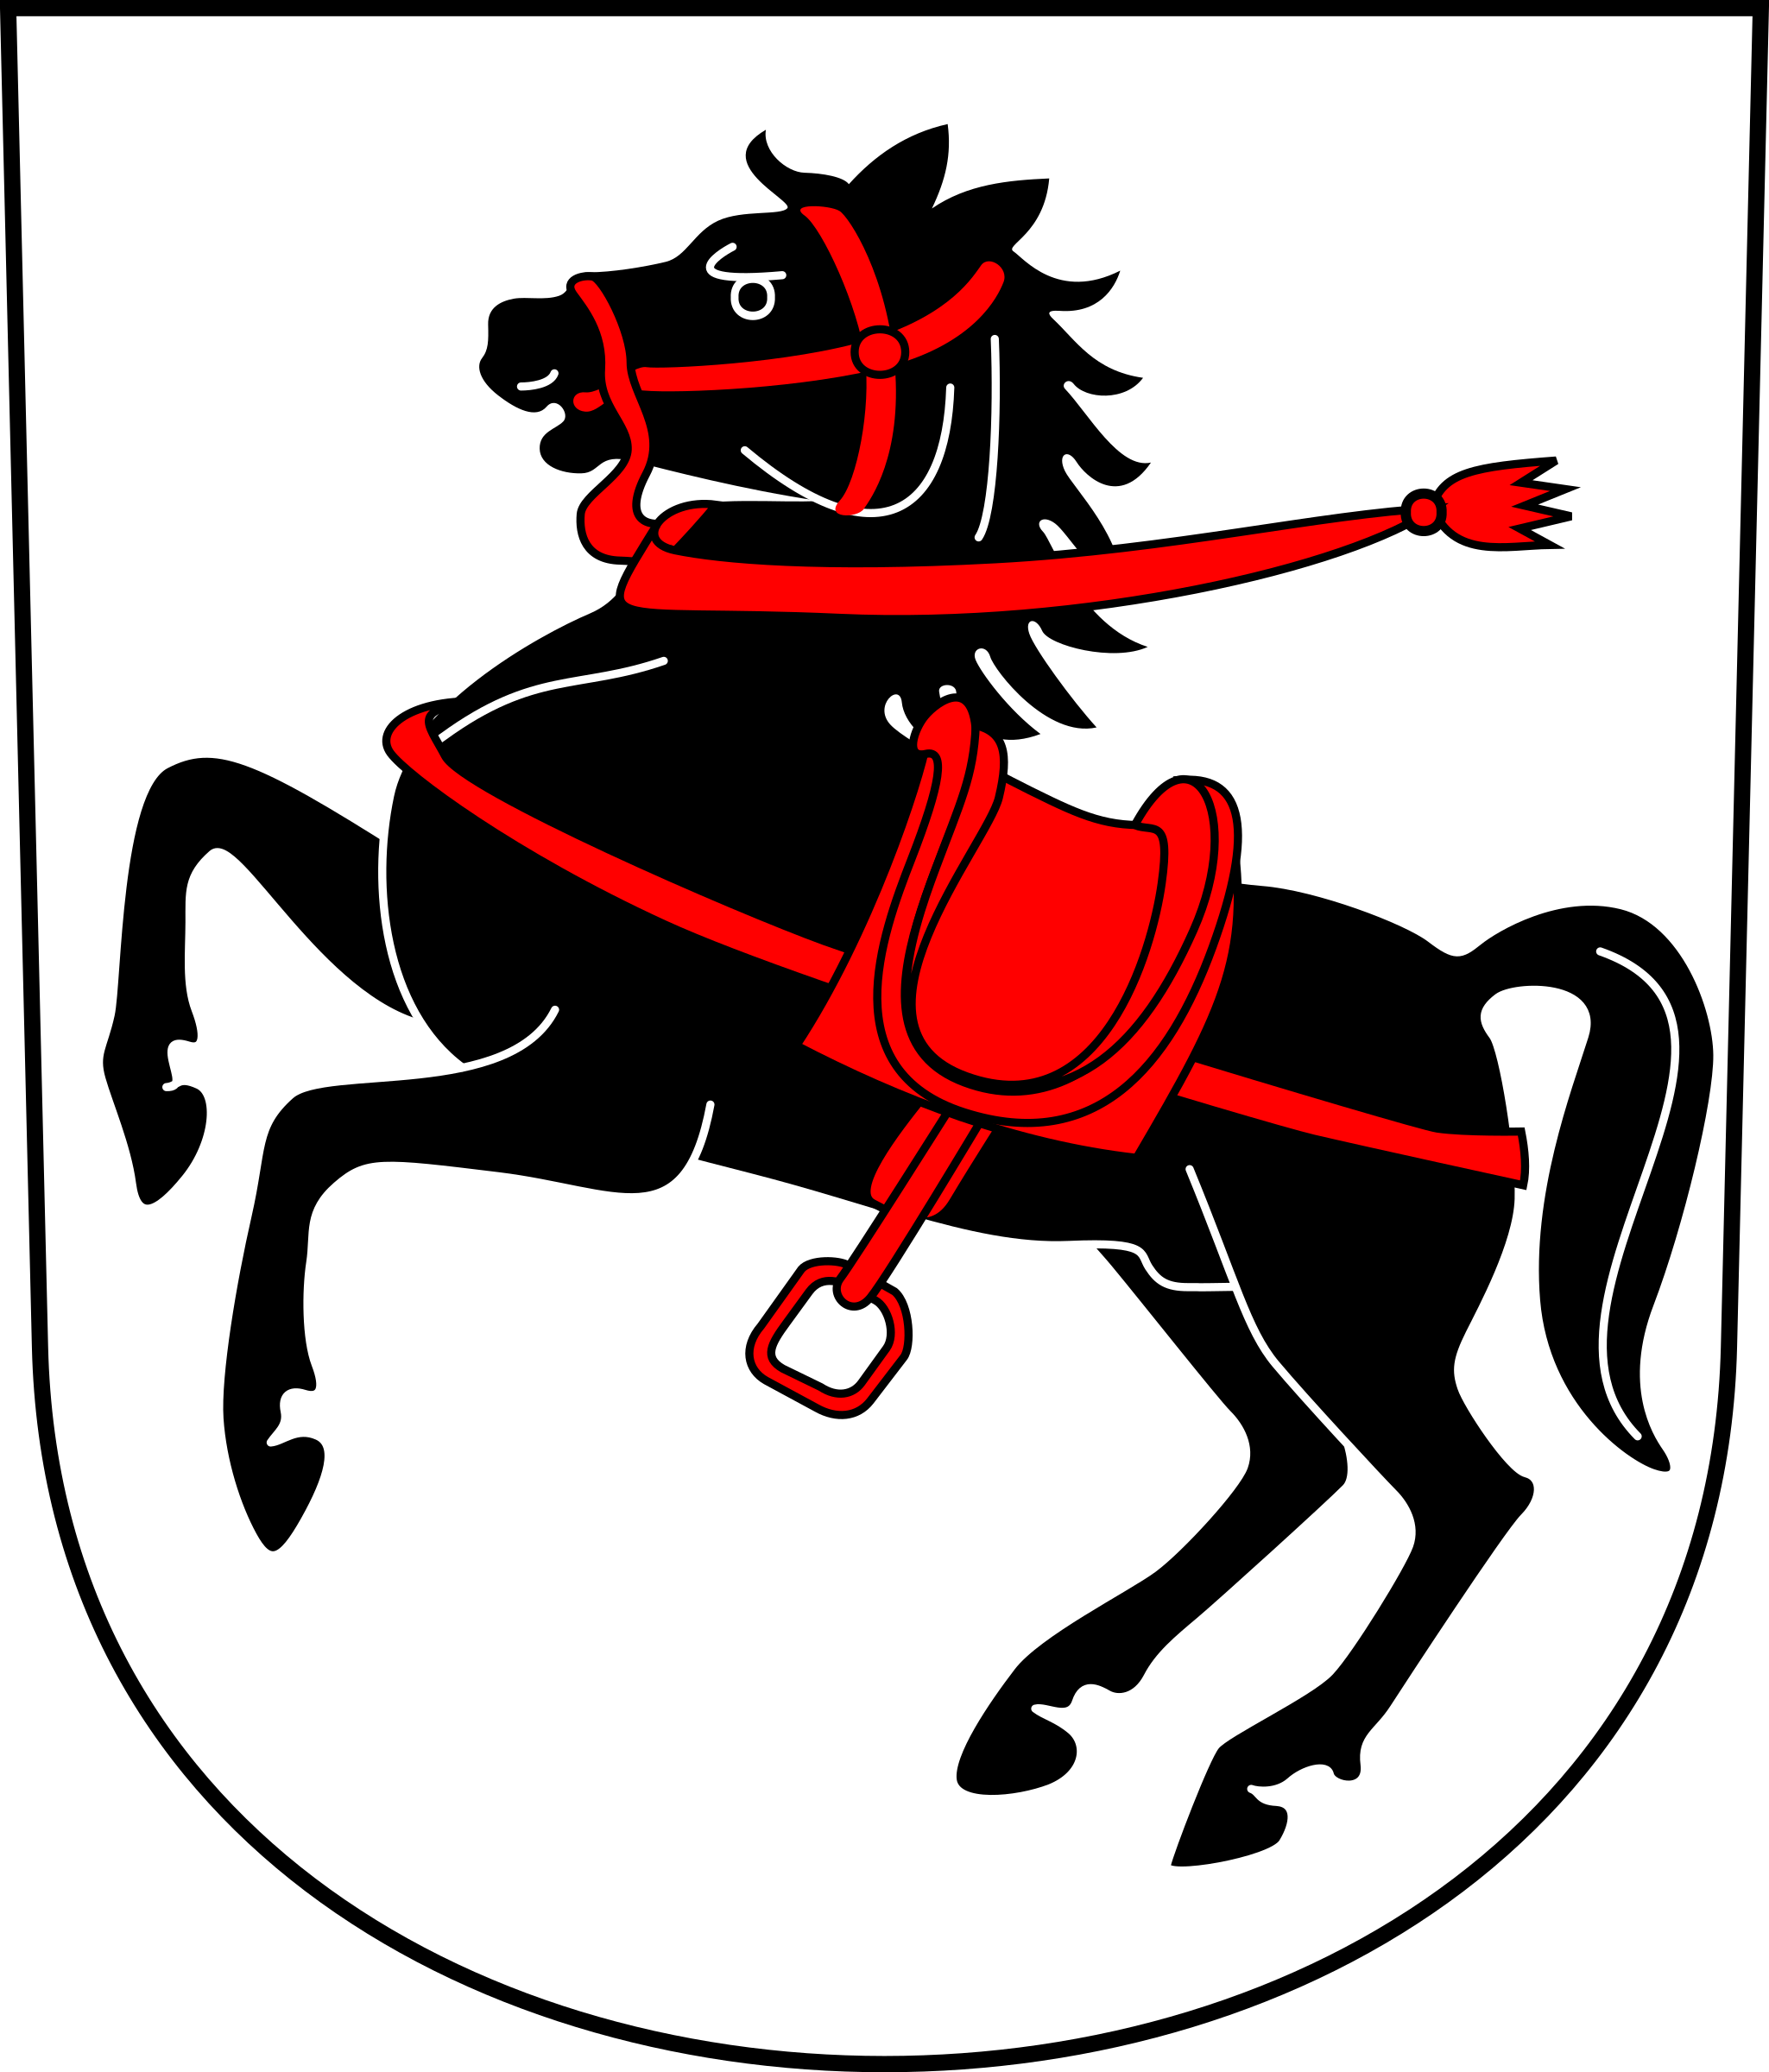 Swiss Seuzach Coat of arms as Shield by wipp